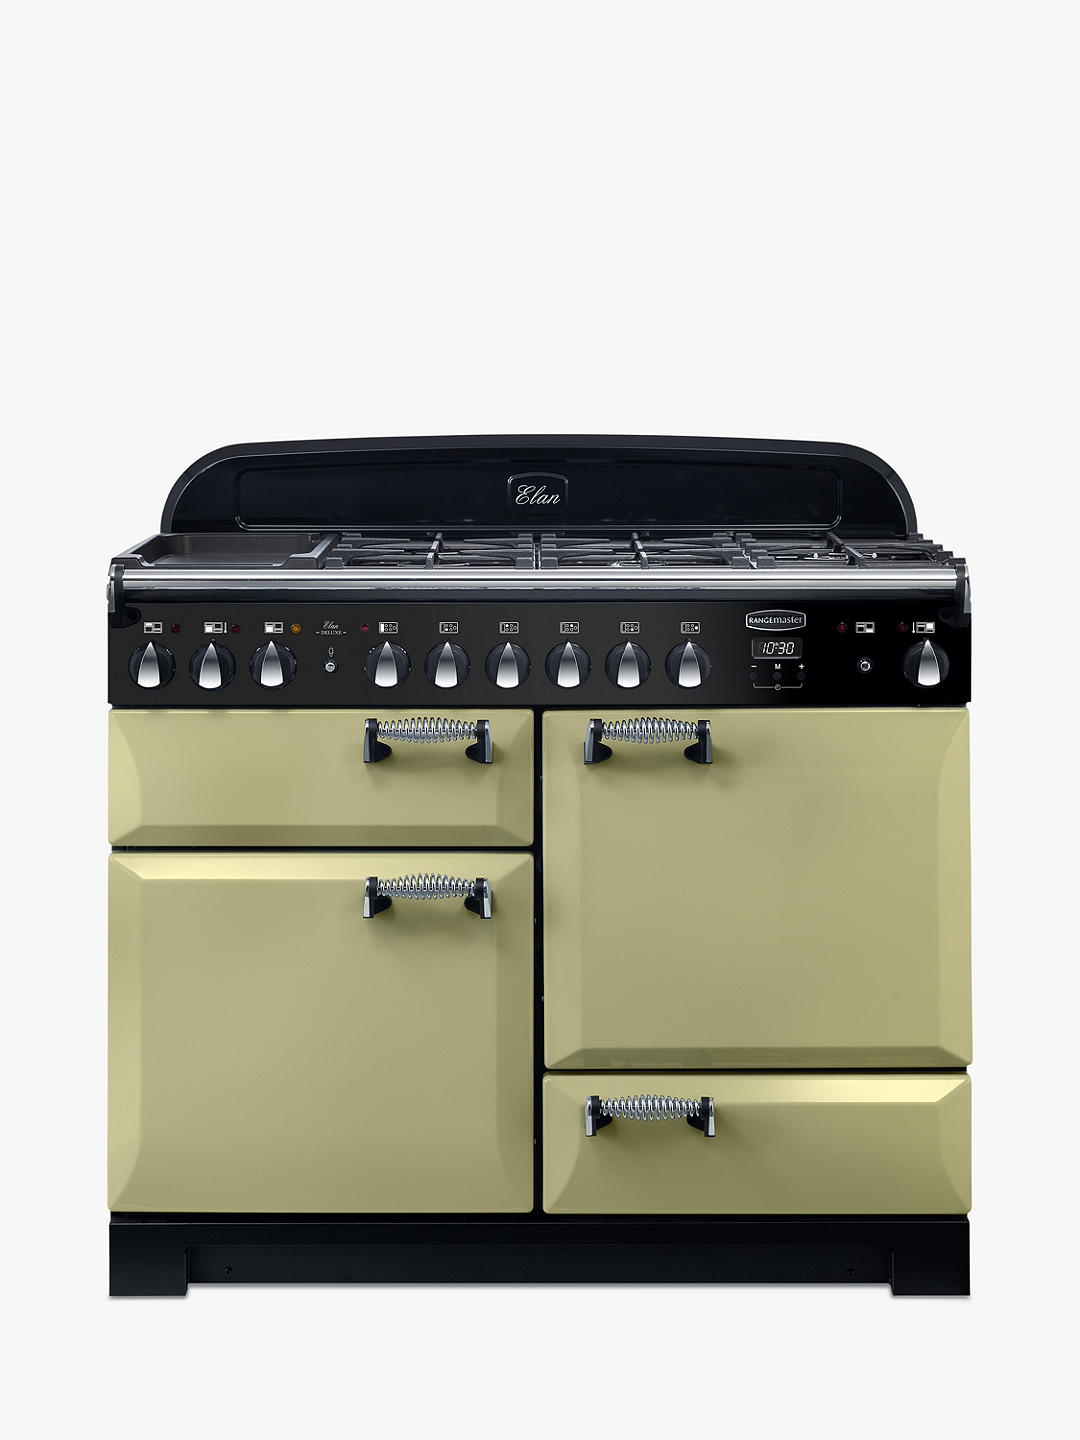 Buy Rangemaster Elan Deluxe 110 Dual Fuel Range Cooker, Olive Green Online at johnlewis.com